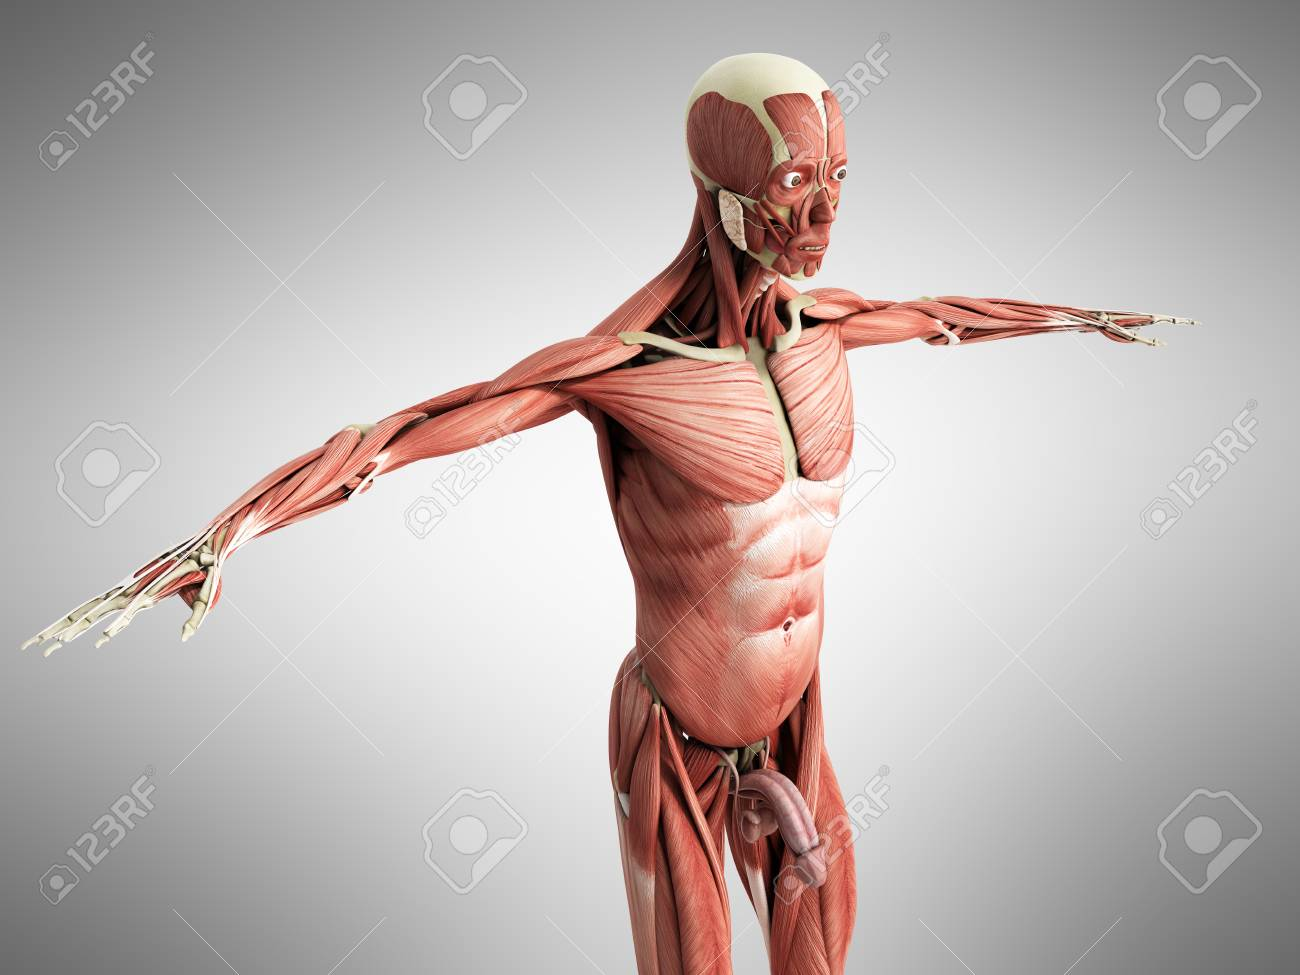 Human Muscle Anatomy 3d Render On Grey Stock Photo Picture And